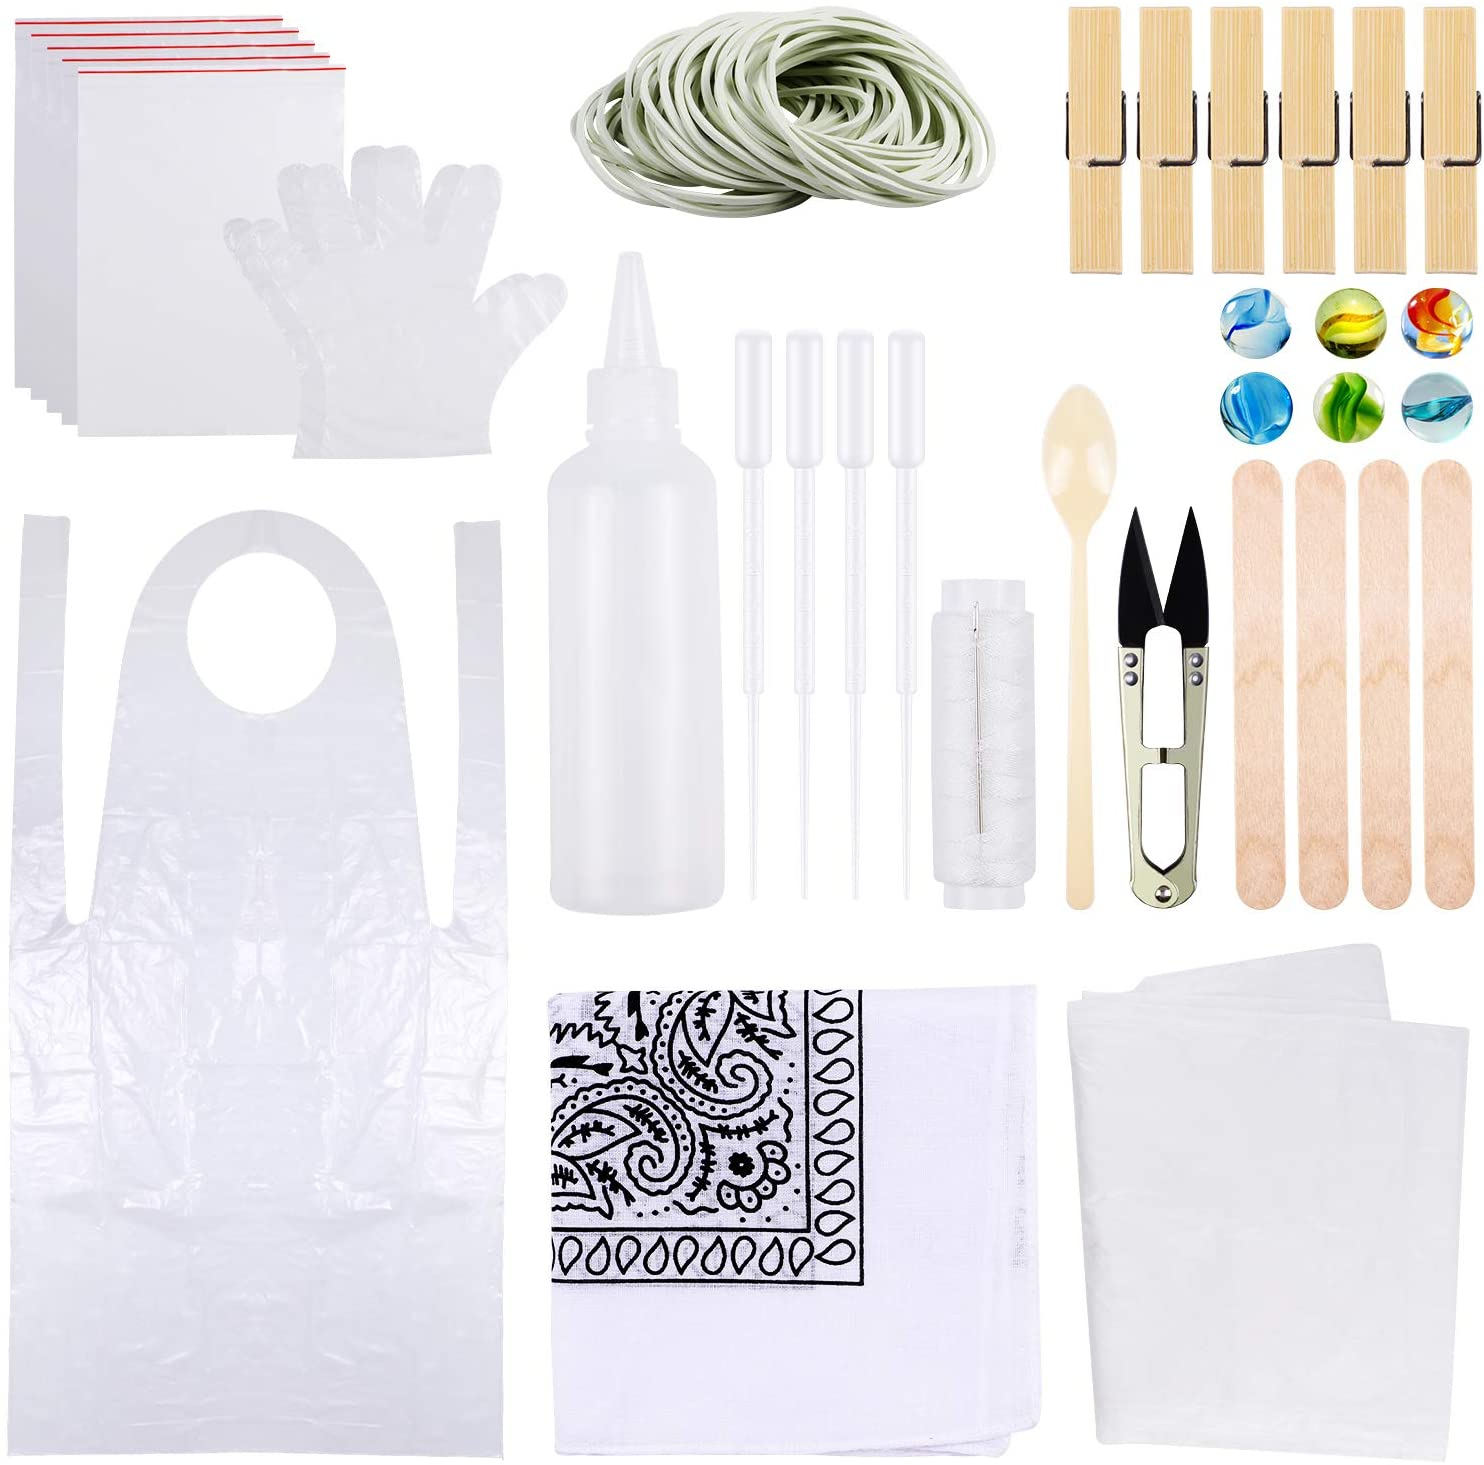 Tie Dye Kit for Kids Adult Party Group, DIY T-Shirt Fabric Tie-Dye Kits, Plastic Gloves, Rubber Bands, Sealed Bags, Aprons, and Tools